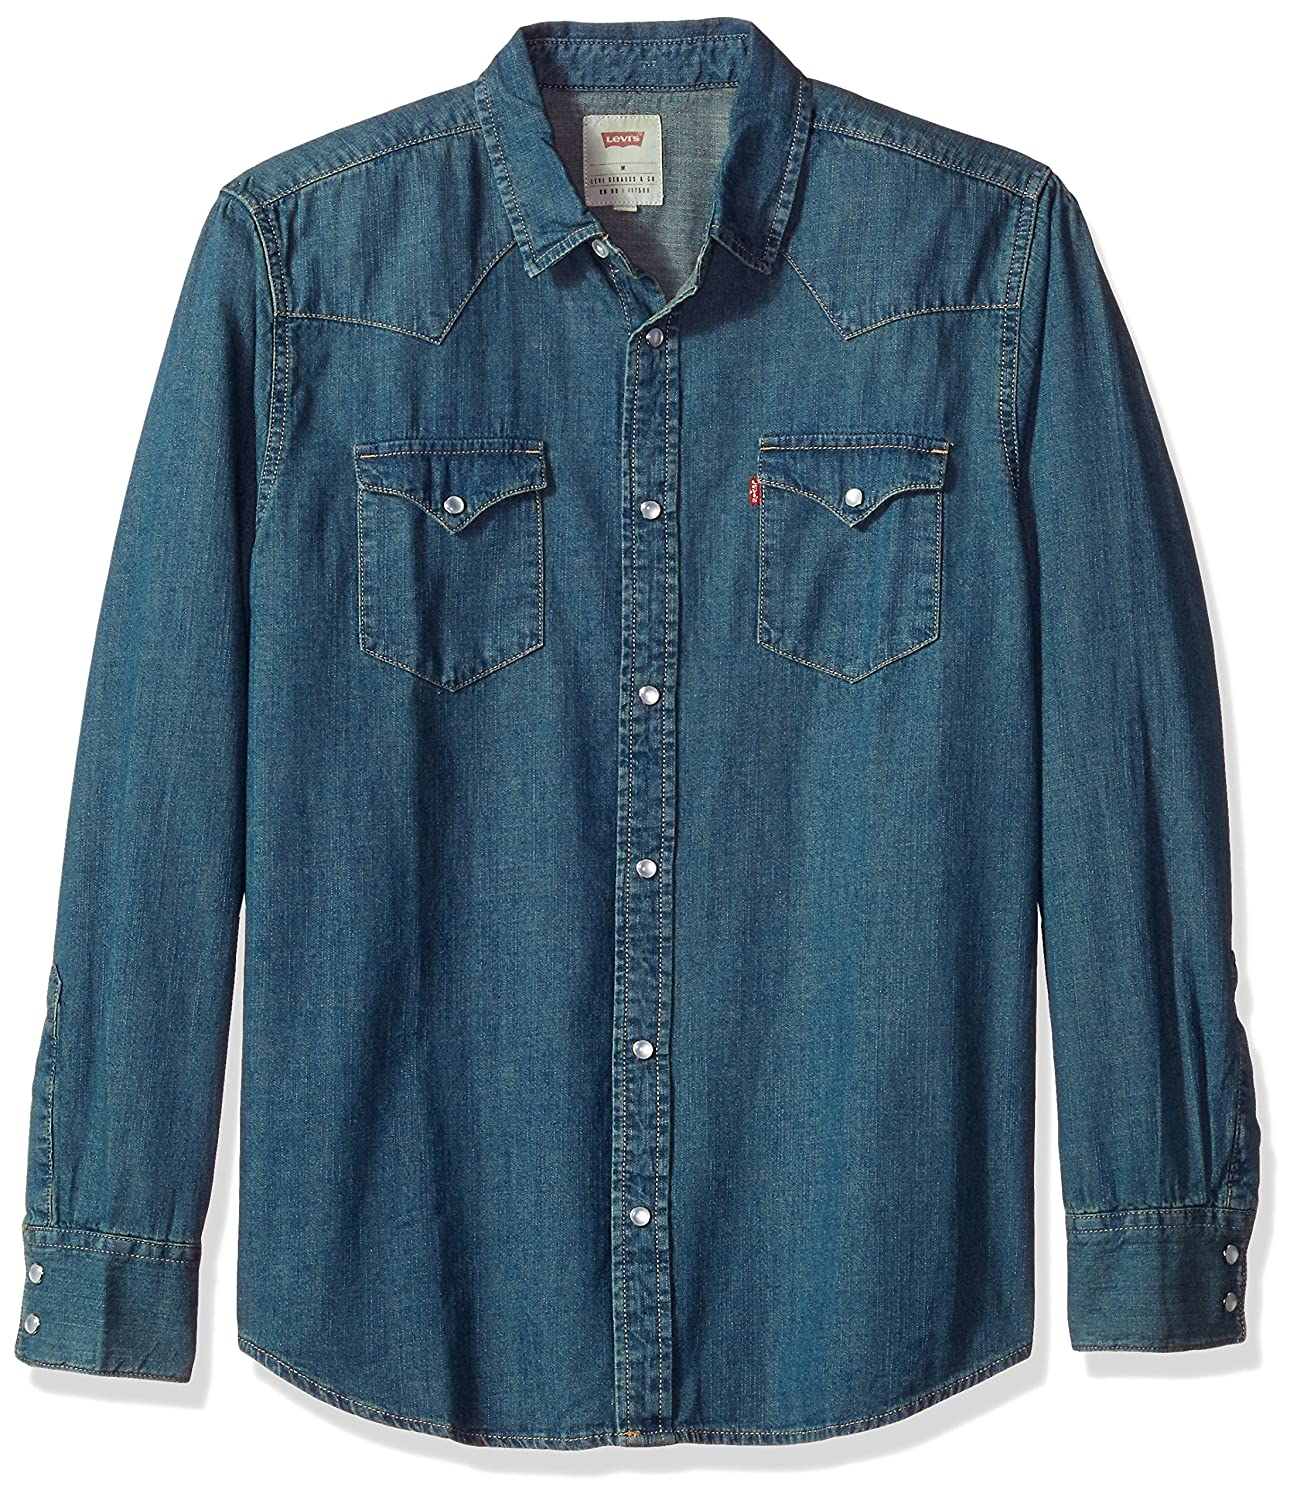 778238f4fd Levi s Men s Standard Barstow Denim Western Snap-Up Shirt at Amazon Men s  Clothing store